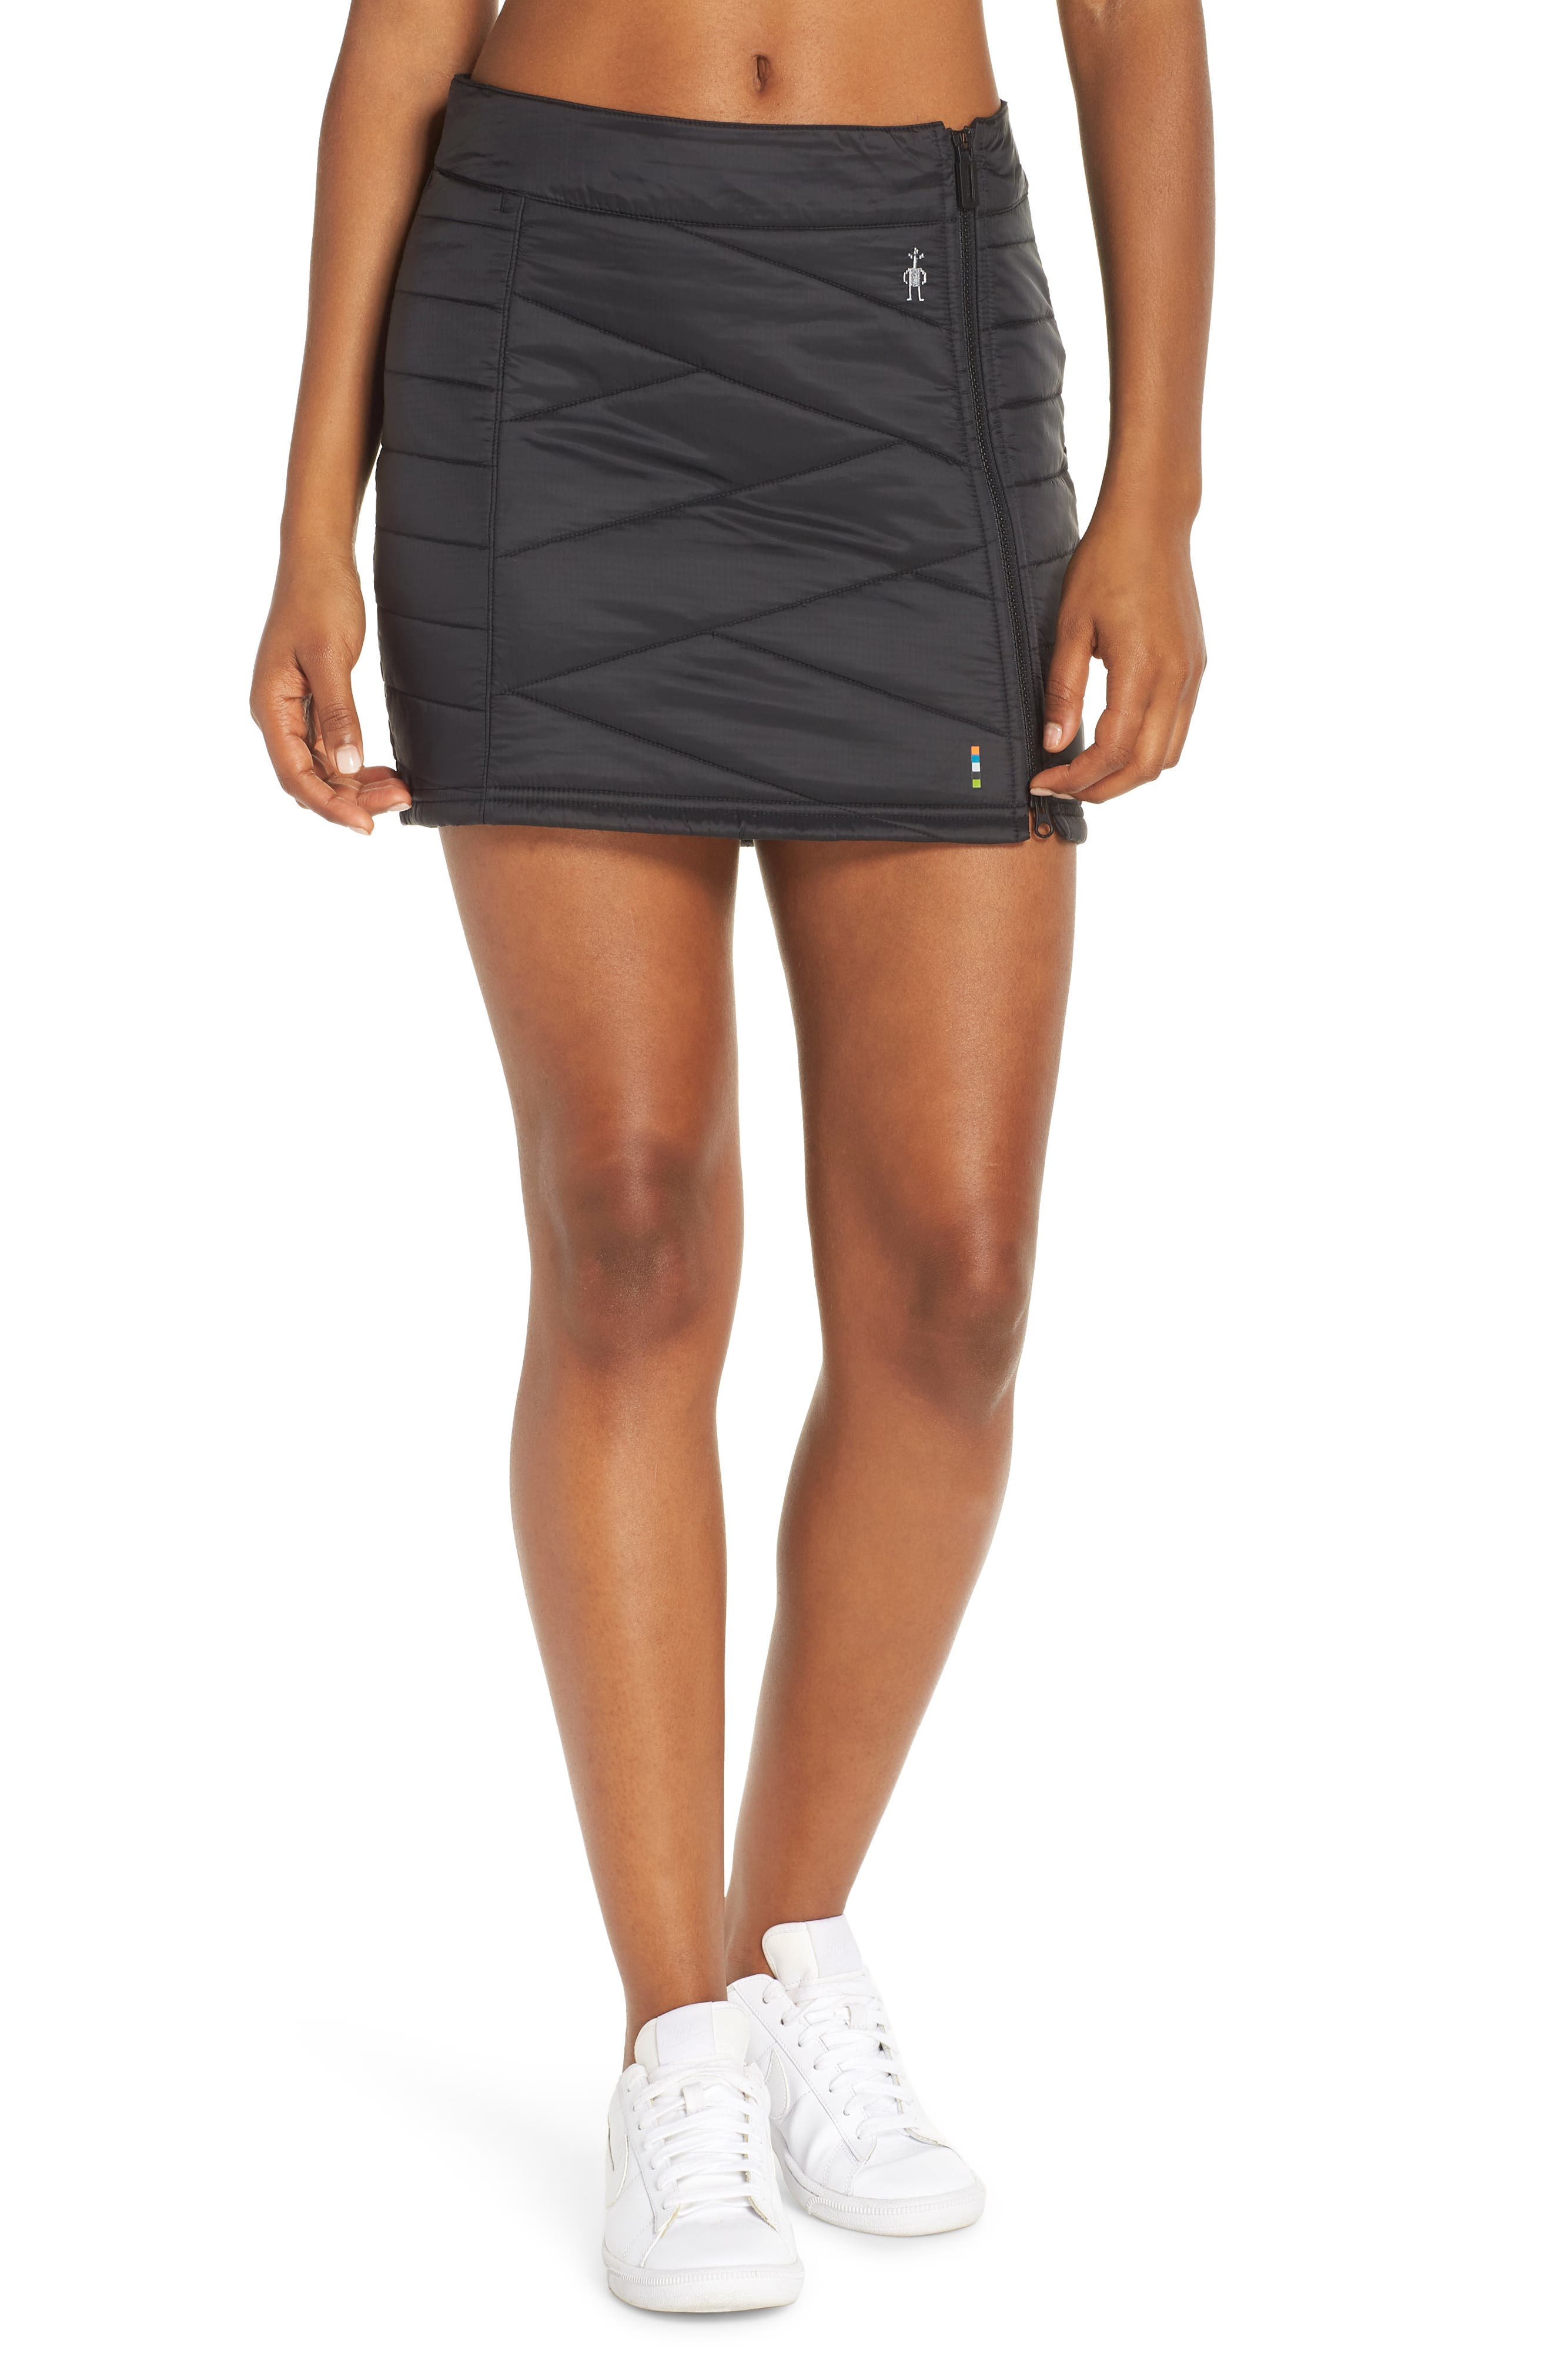 Smartloft 120 Quilted Skirt,                         Main,                         color, 001